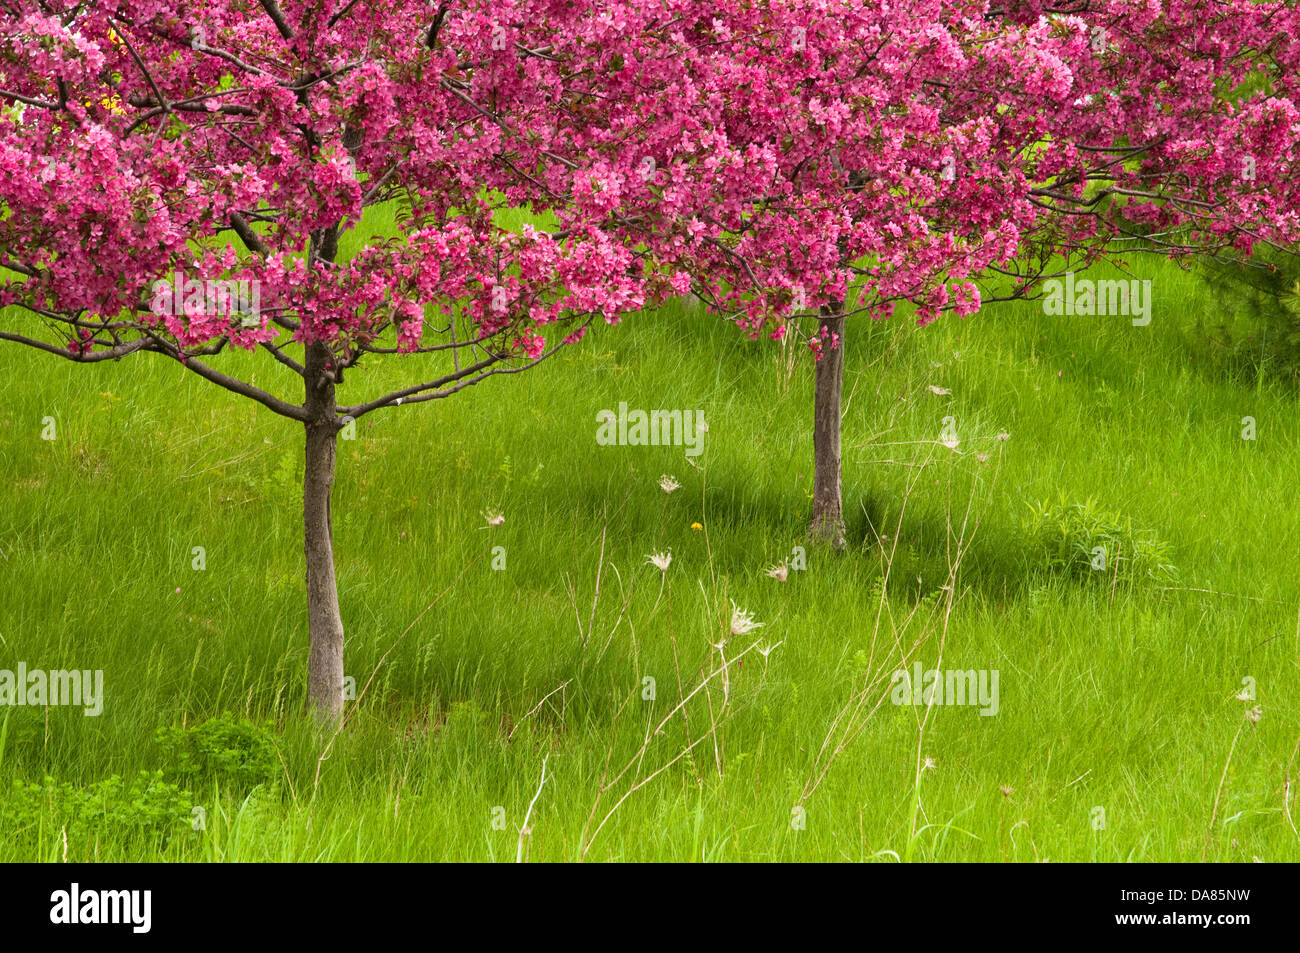 Flowering trees at the Frederik Meijer Gardens and Sculpture Park, Grand Rapids, Michigan, United States of America - Stock Image